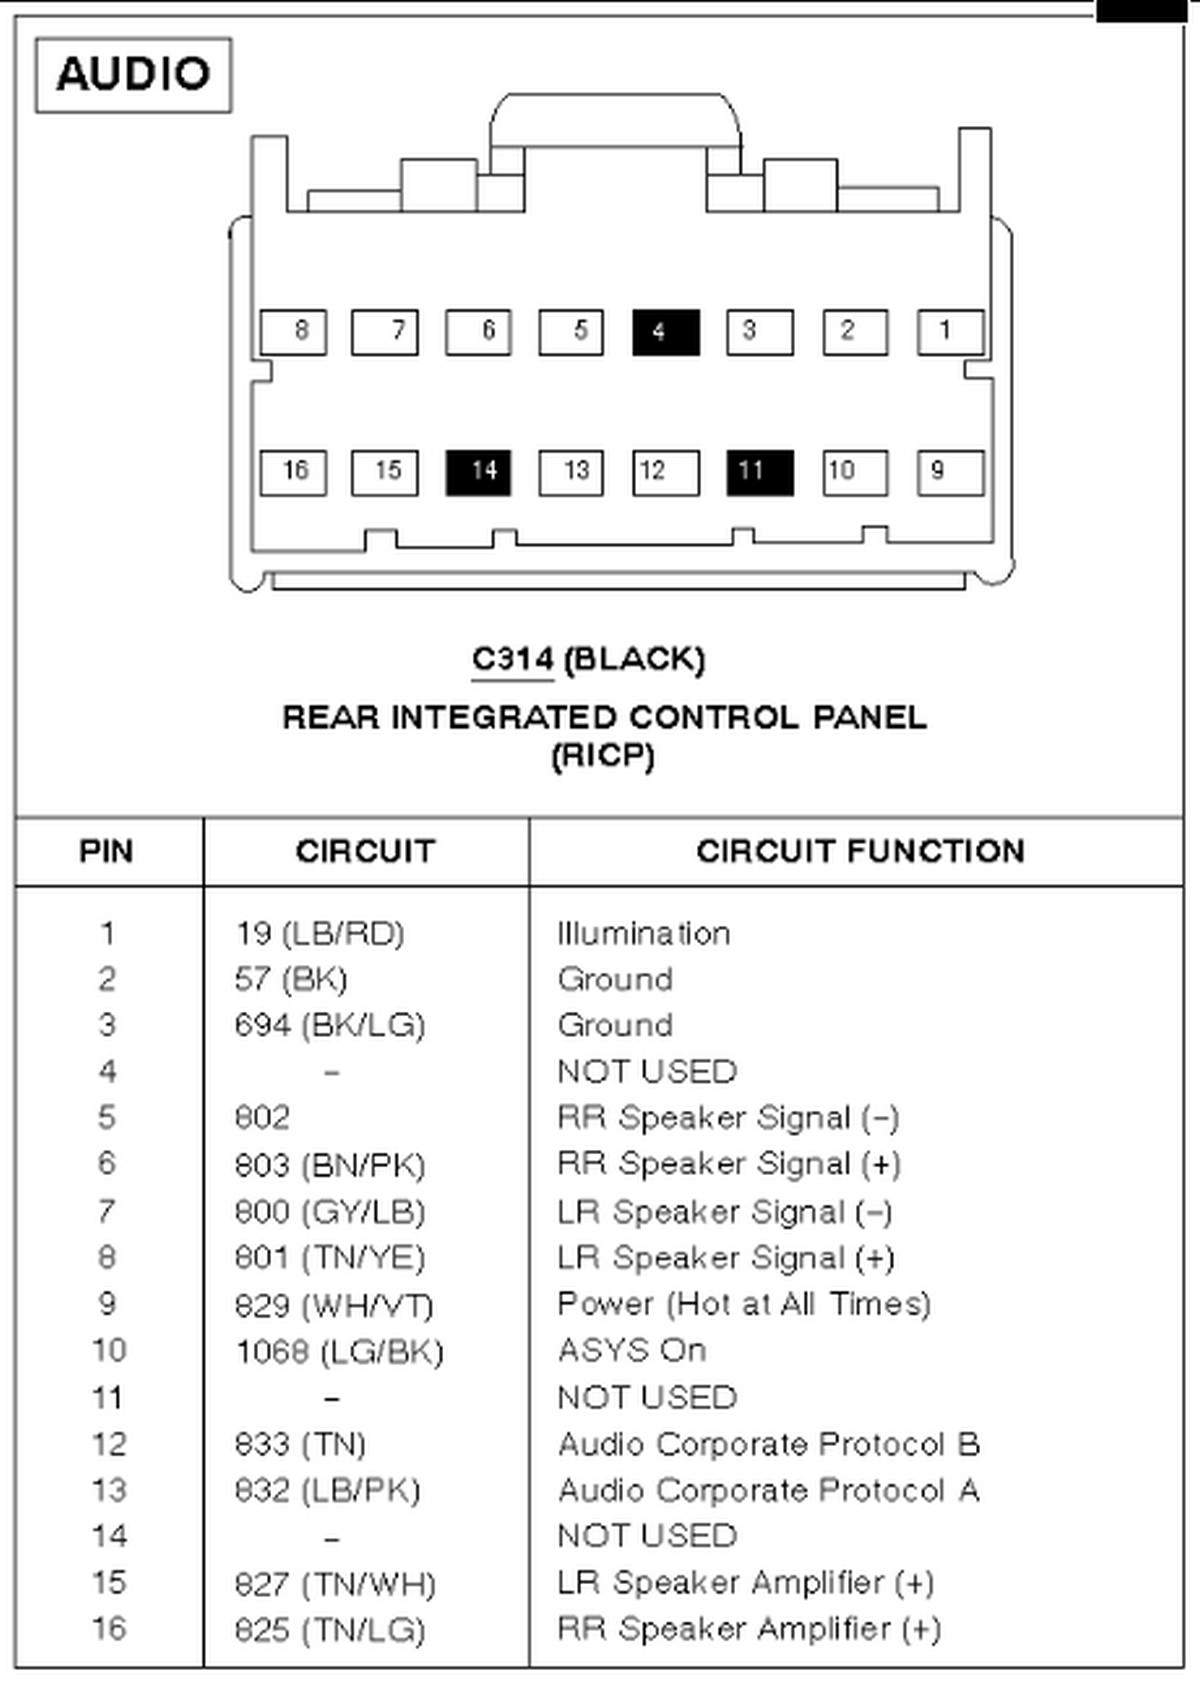 1996 ford bronco radio wiring diagram baldor motor capacitor car stereo audio autoradio connector wire installation schematic ...